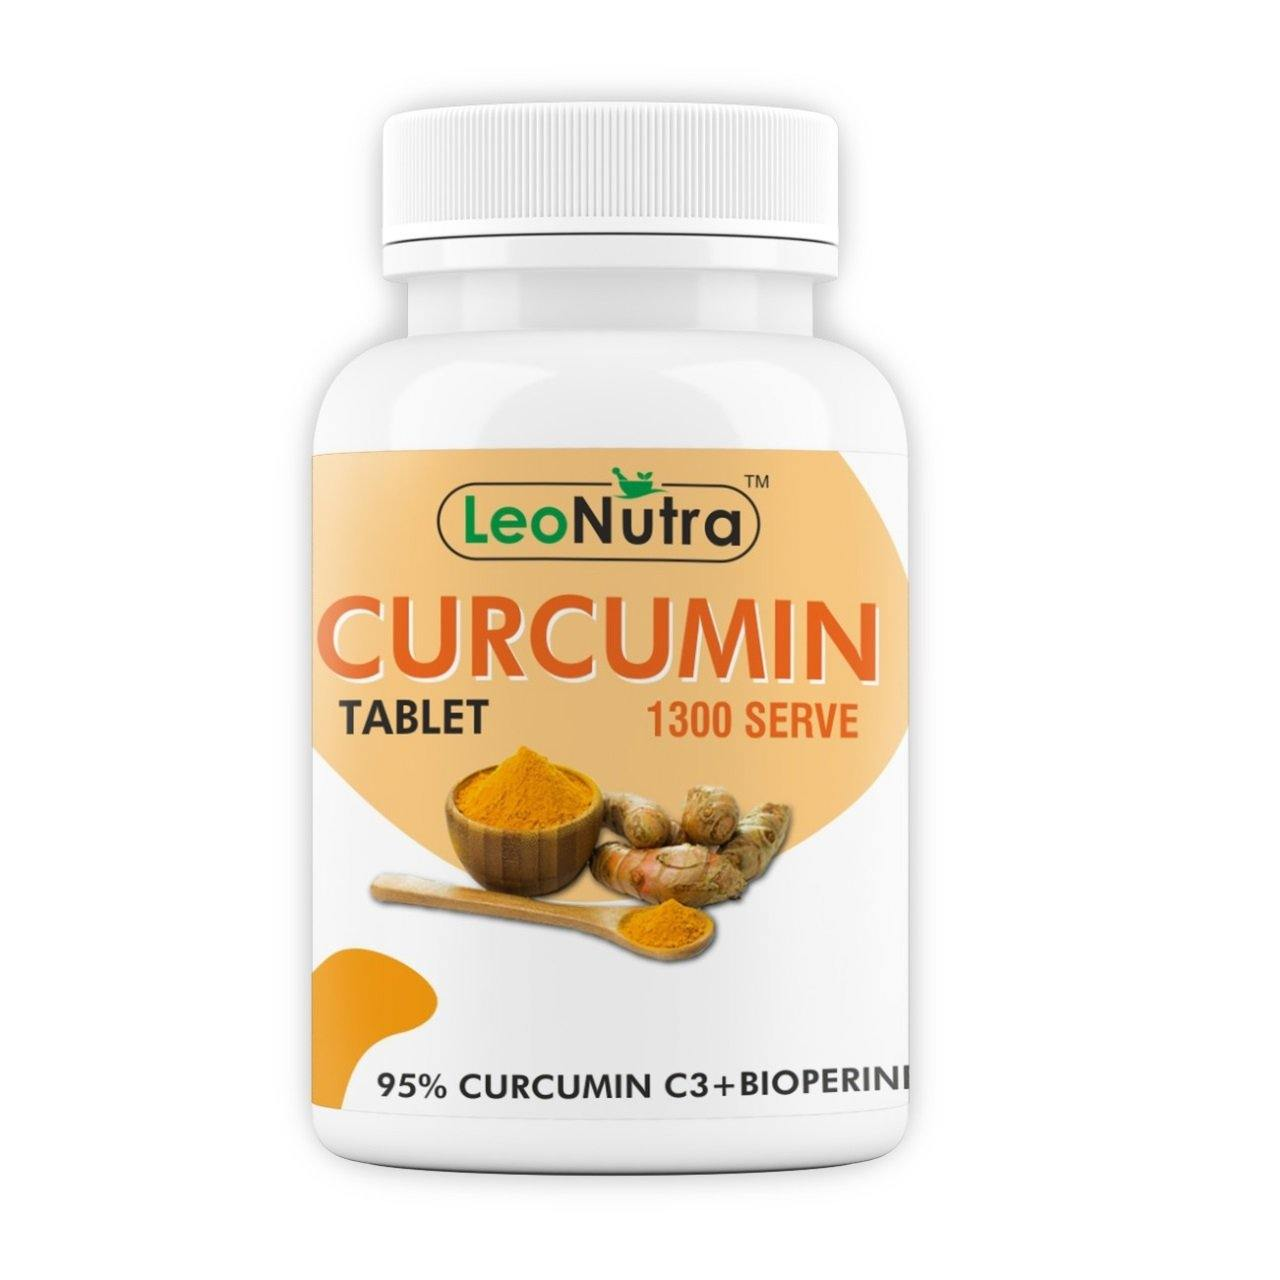 LeoNutra Curcumin Tablet 800 mg - 60 Tablets | 1300 Serve